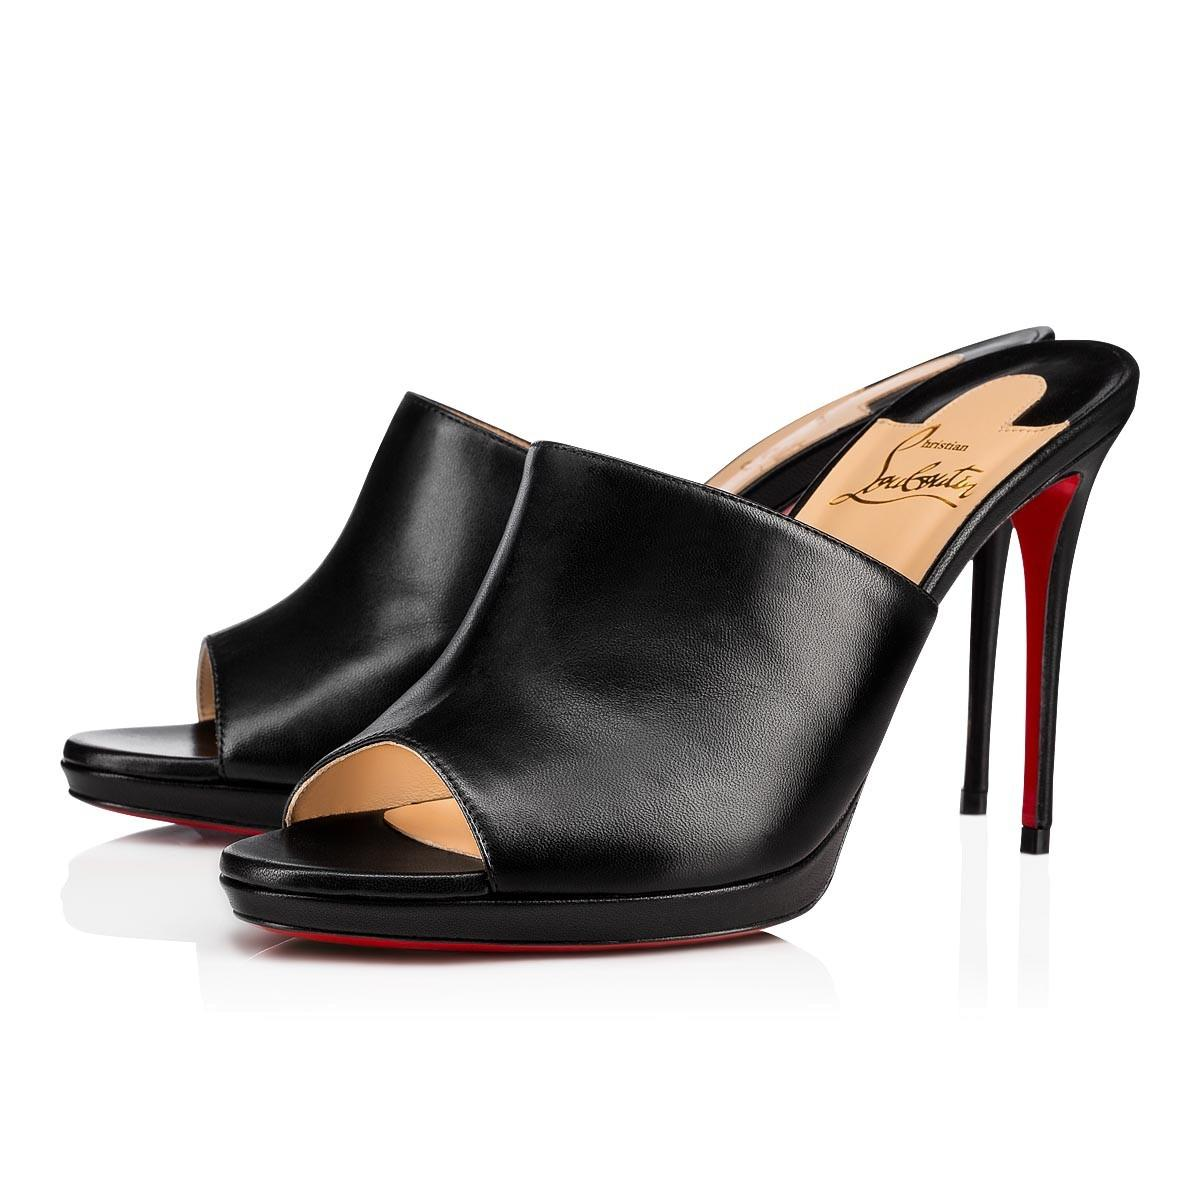 f265bf7cdae8a4 Christian Louboutin Black Pigamule 100 Pigalle Backless Backless Backless  Sandal Slide Stiletto Mule Heel Pumps Size EU 39 (Approx. US 9) Regular (M